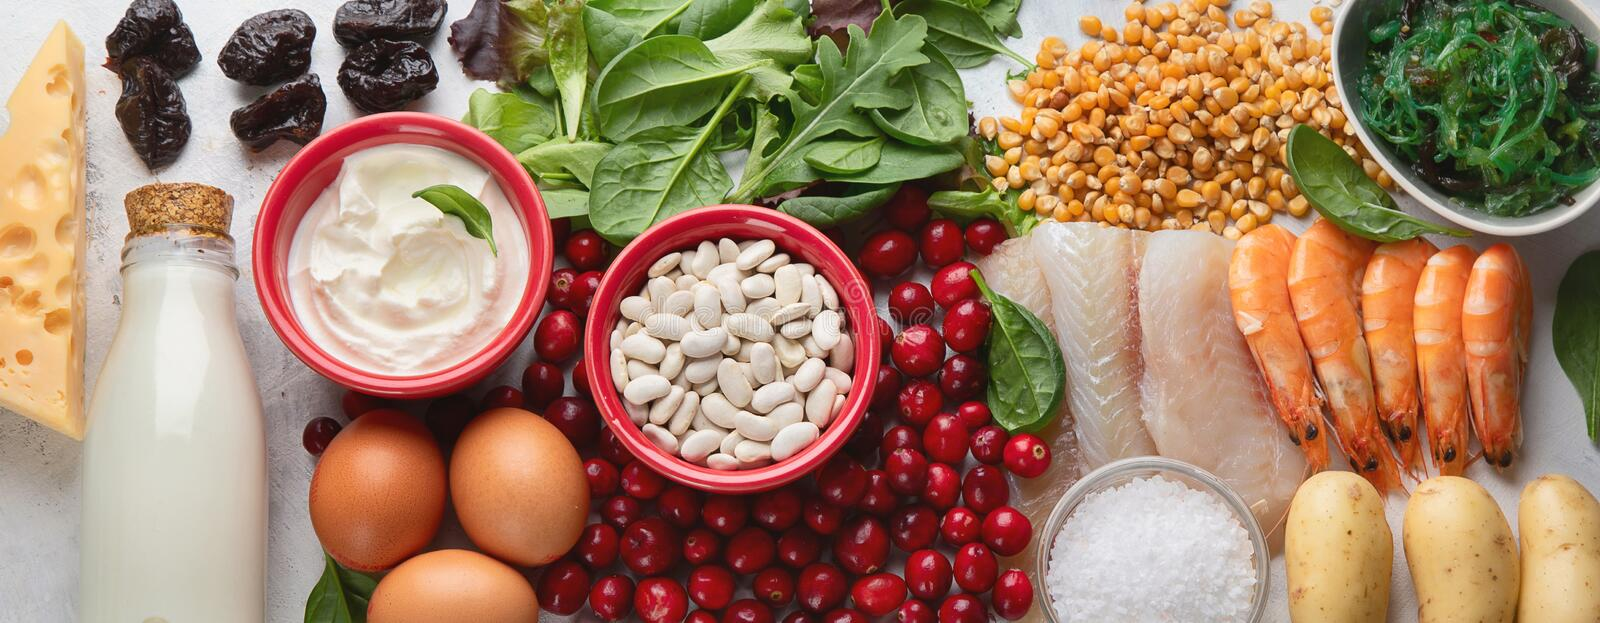 Foods rich in iodine royalty free stock images